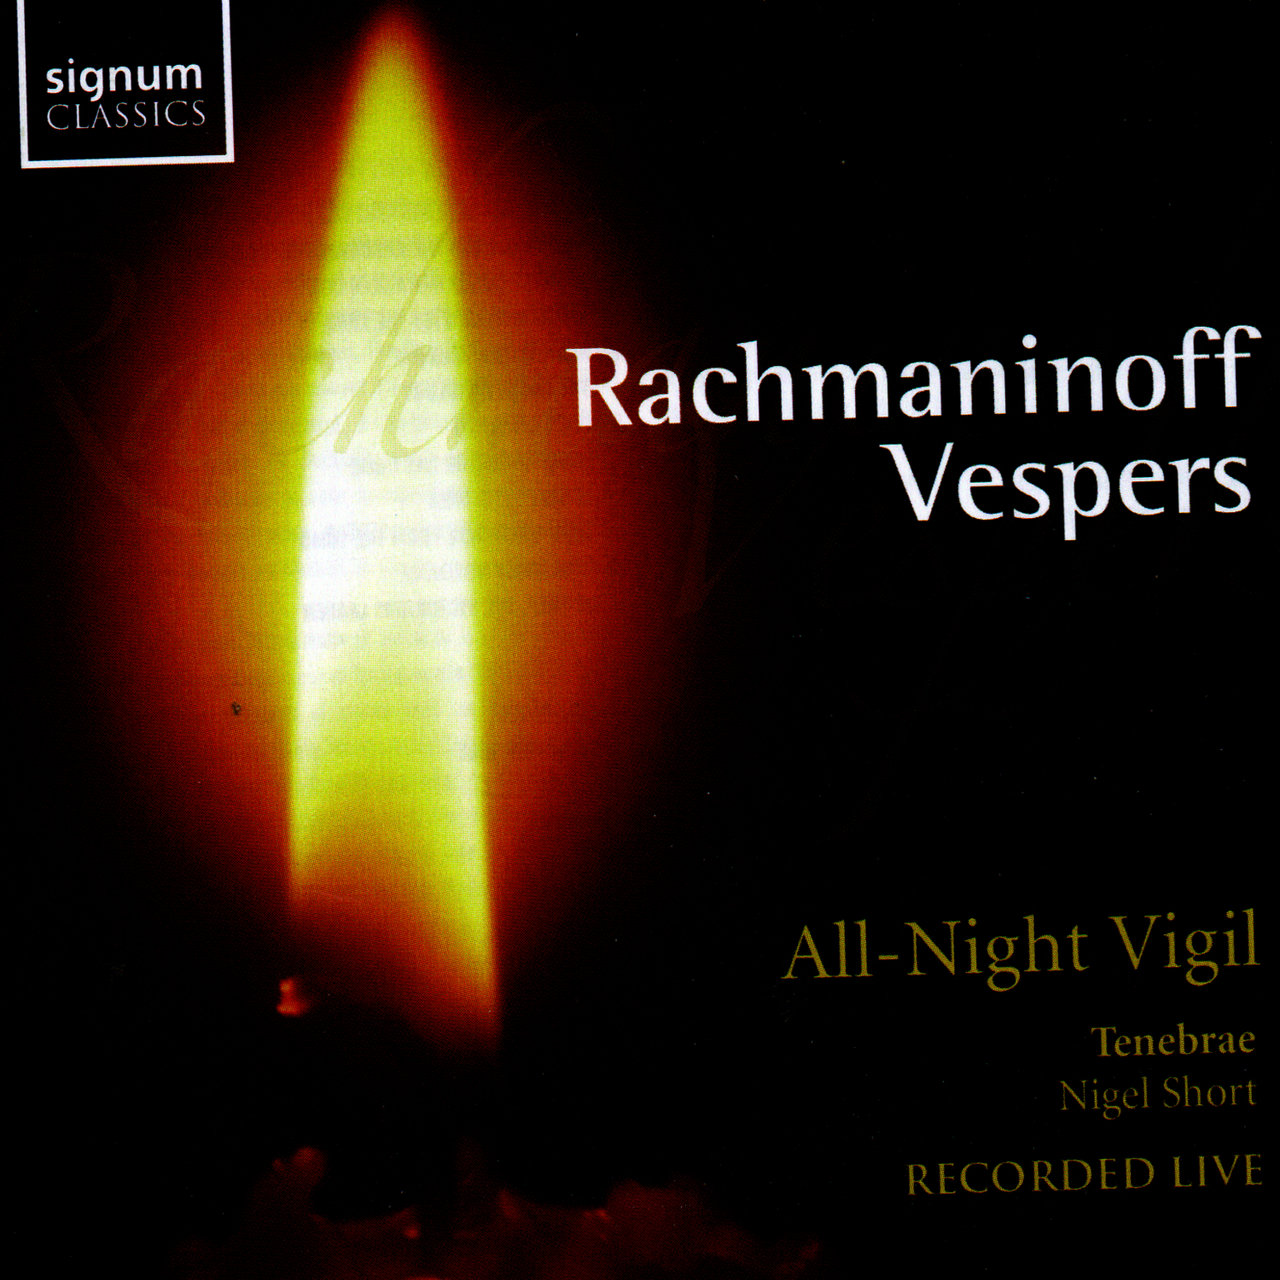 Rachmaninoff Vespers: All Night Vigil